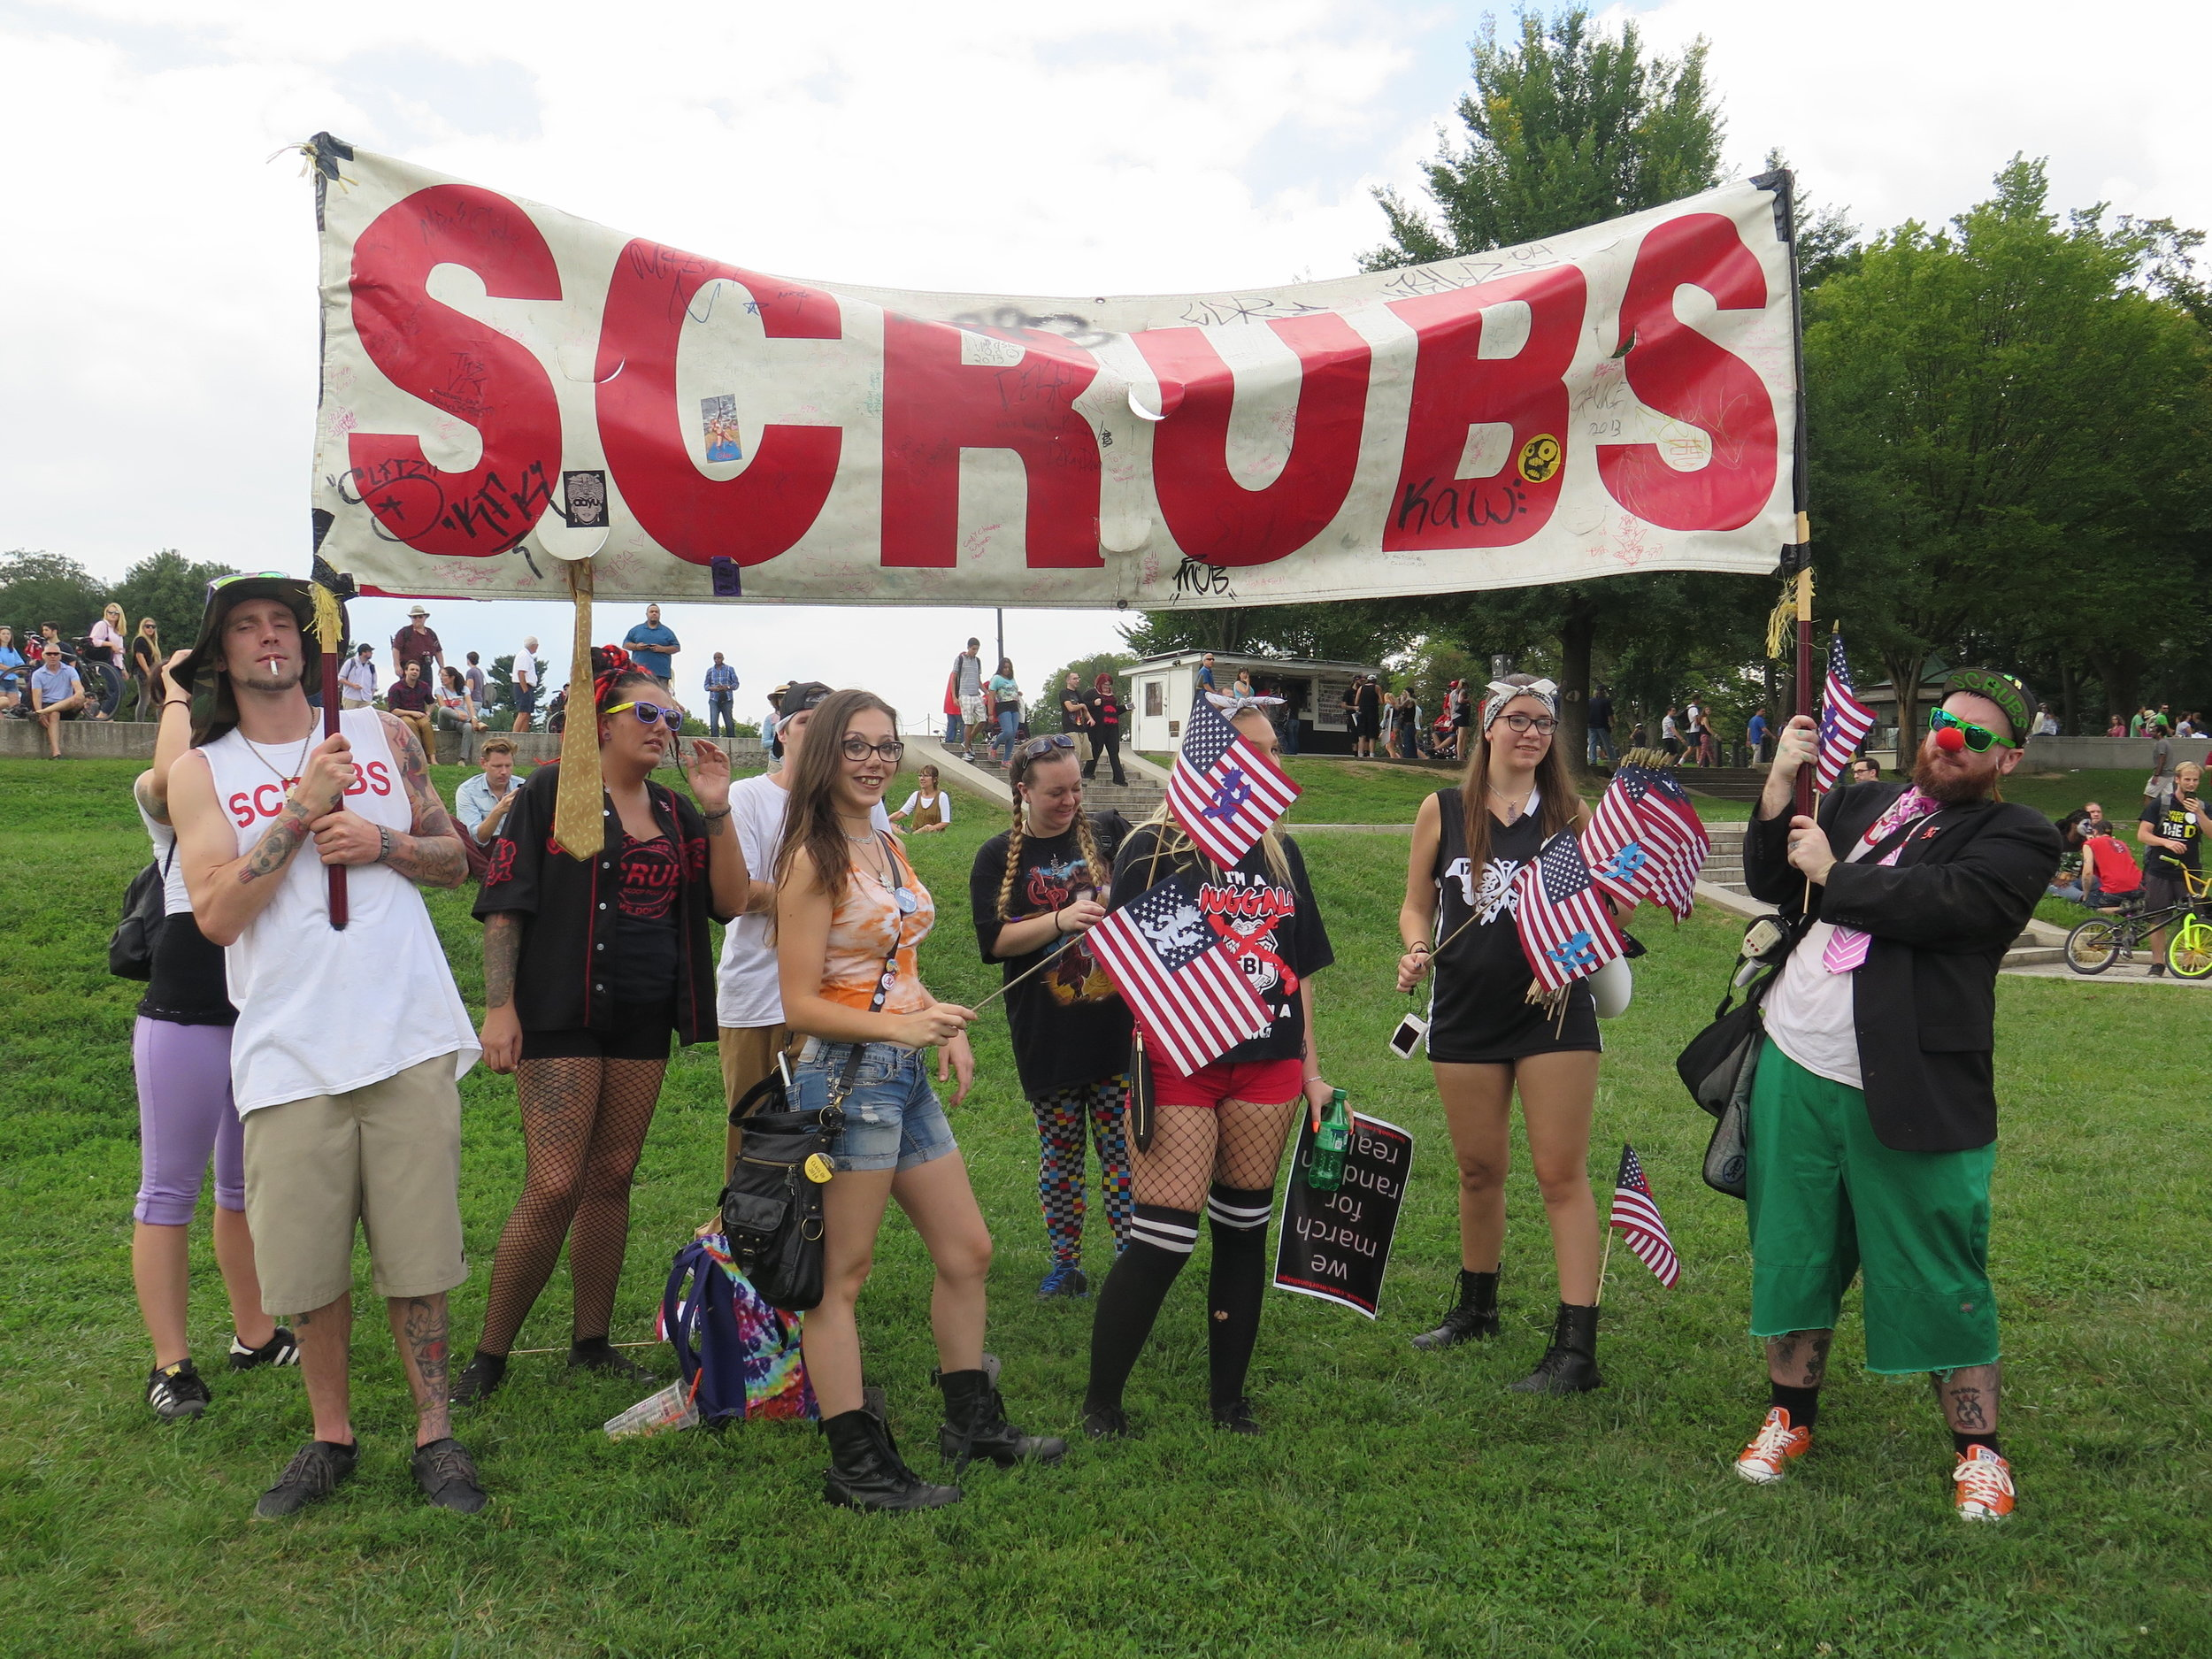 YES SCRUBS. This banner was a major hit at the march.